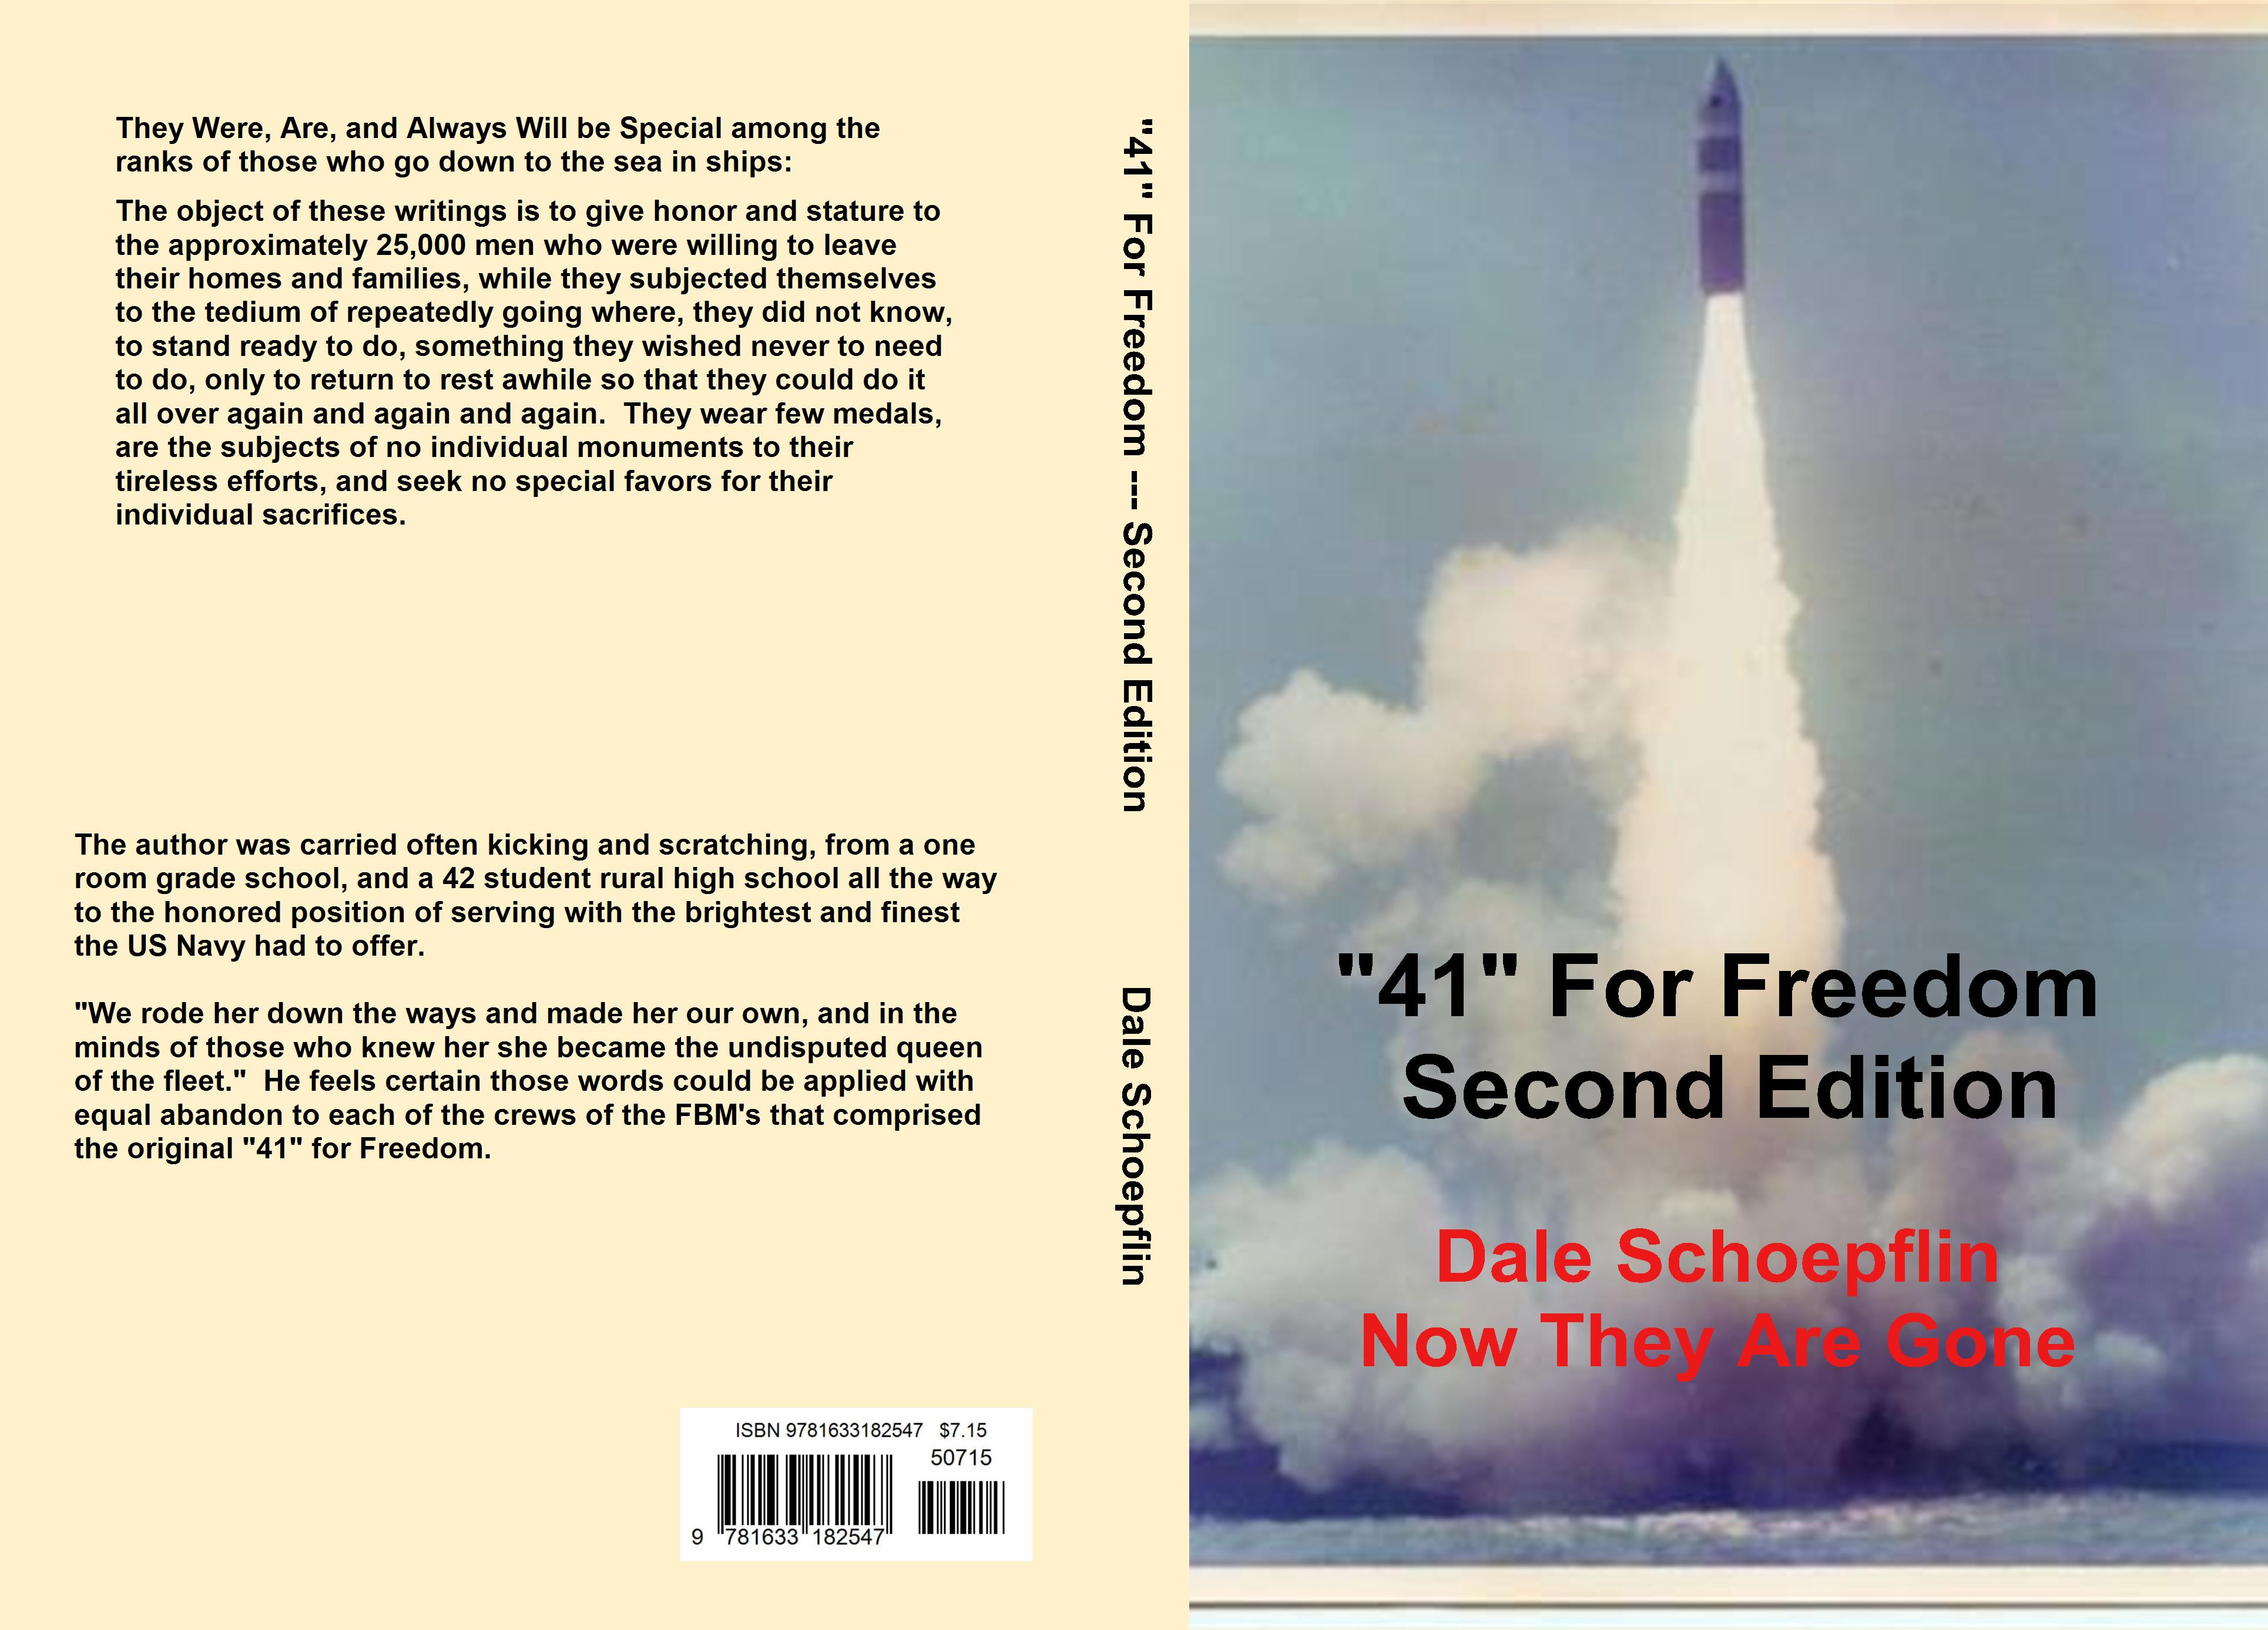 """41"" For Freedom Second Edition cover image"